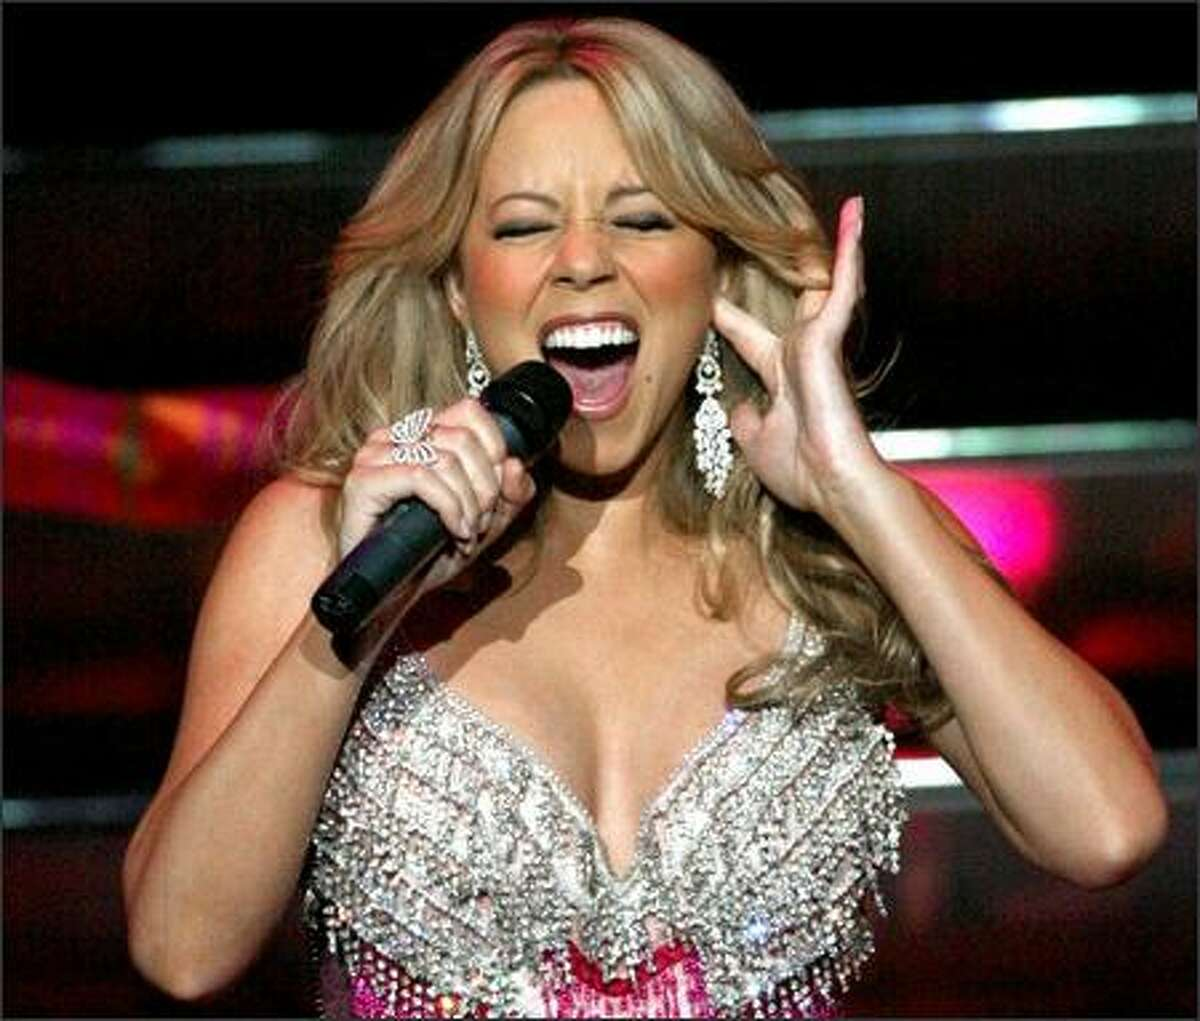 Mariah Carey, who has a five-octave range, hits a high note.